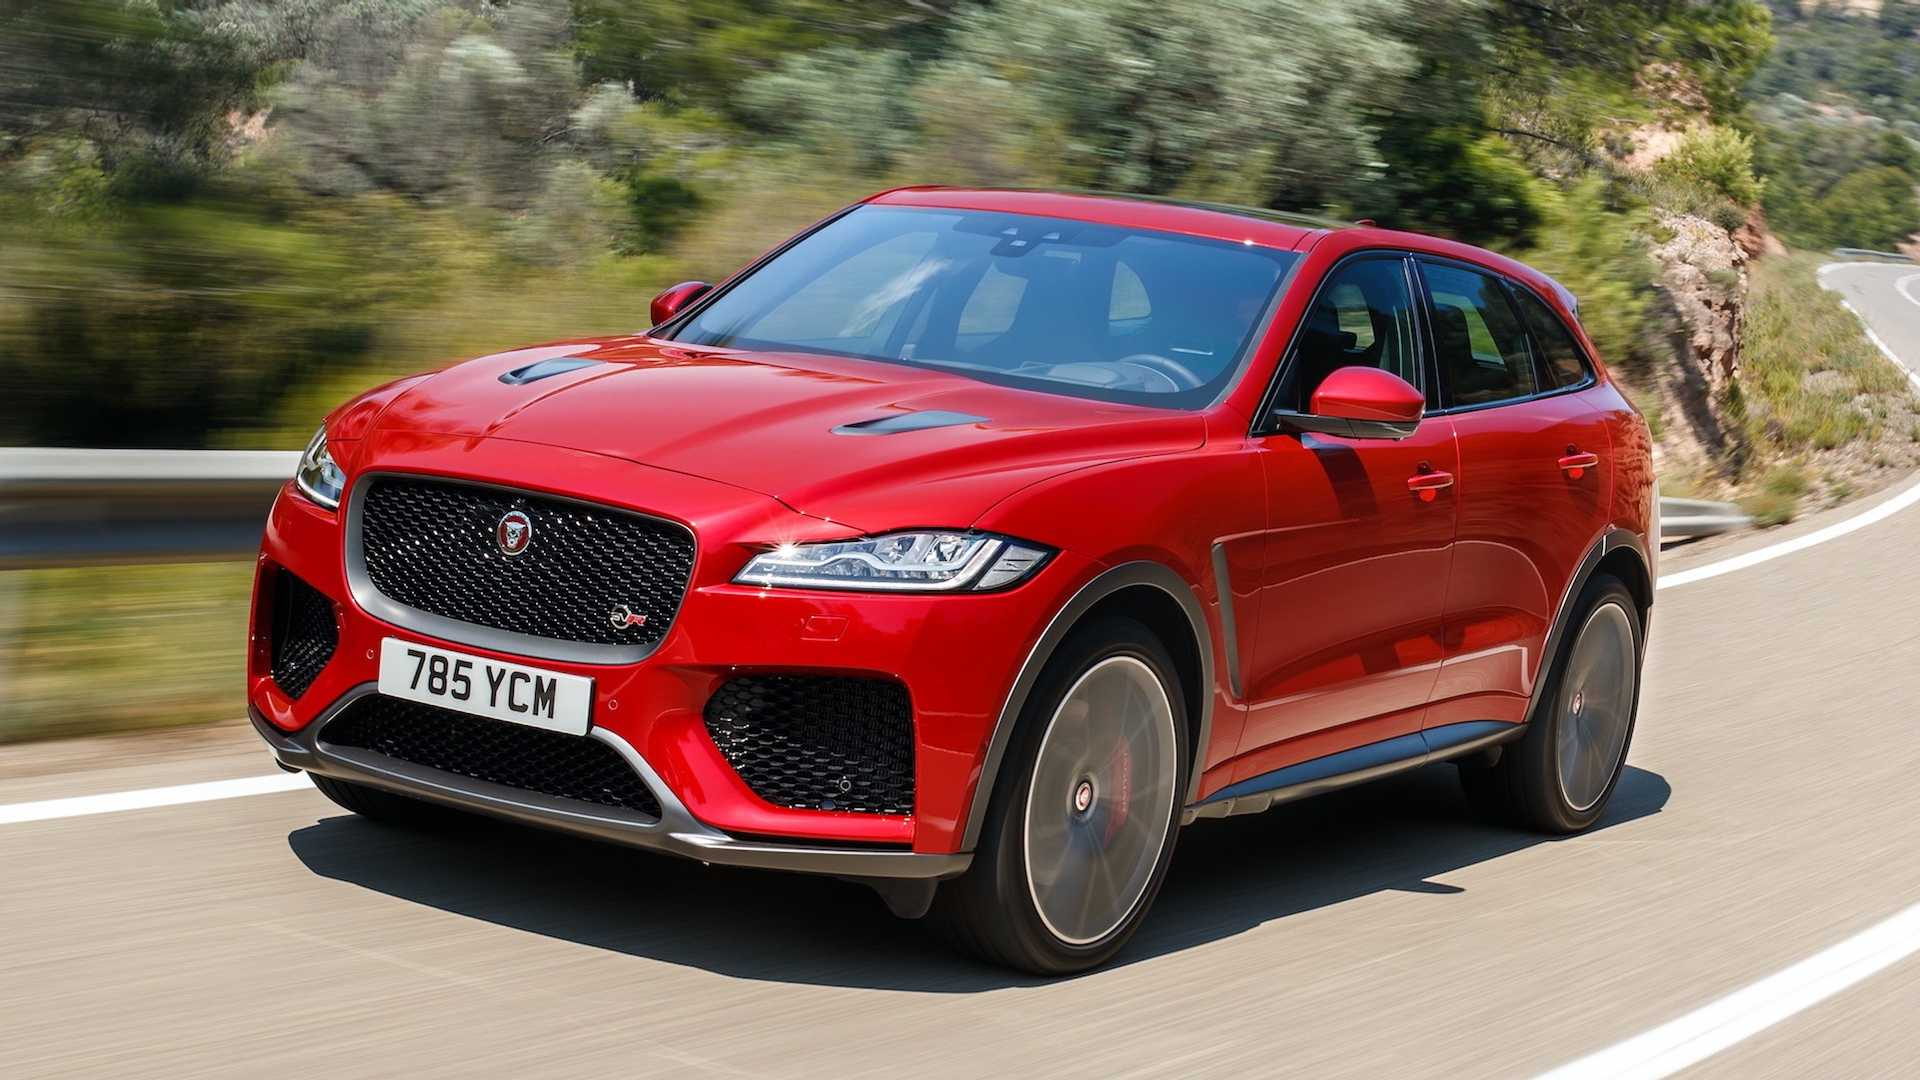 2019 Jaguar F Pace Svr Color Firenze Red Front Three